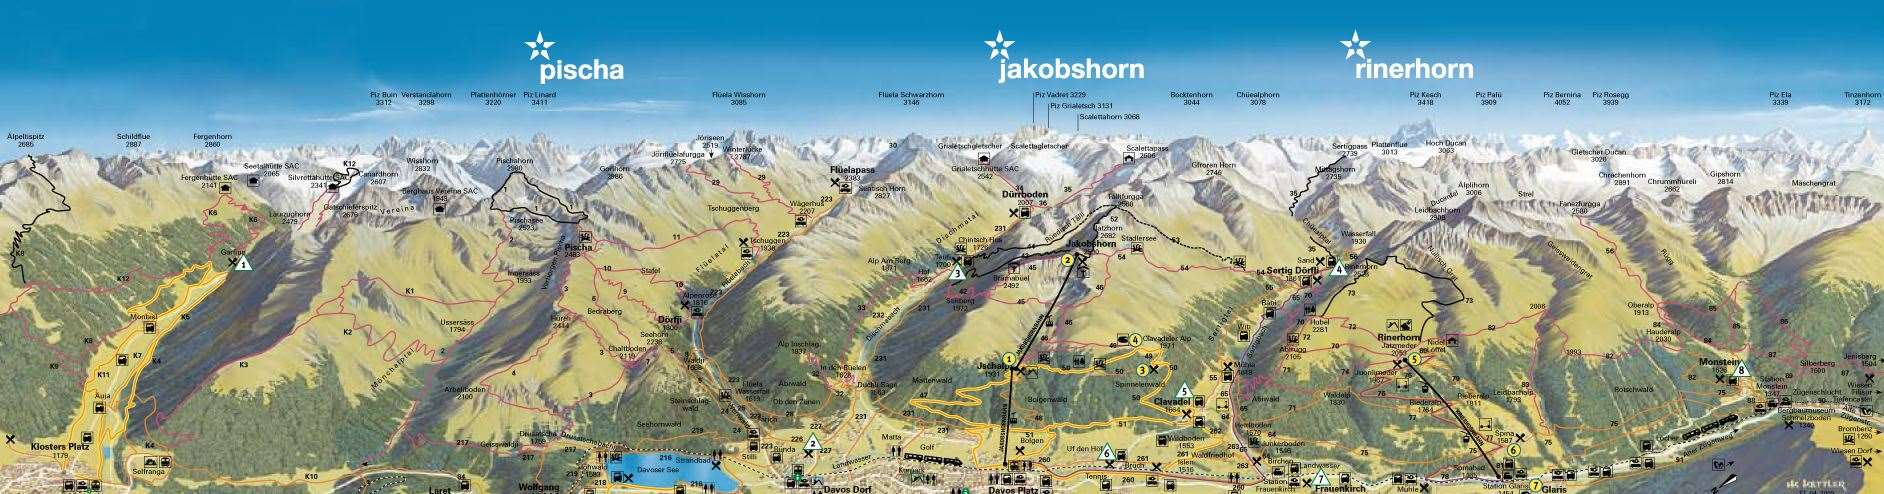 Davos Klosters Piste Map